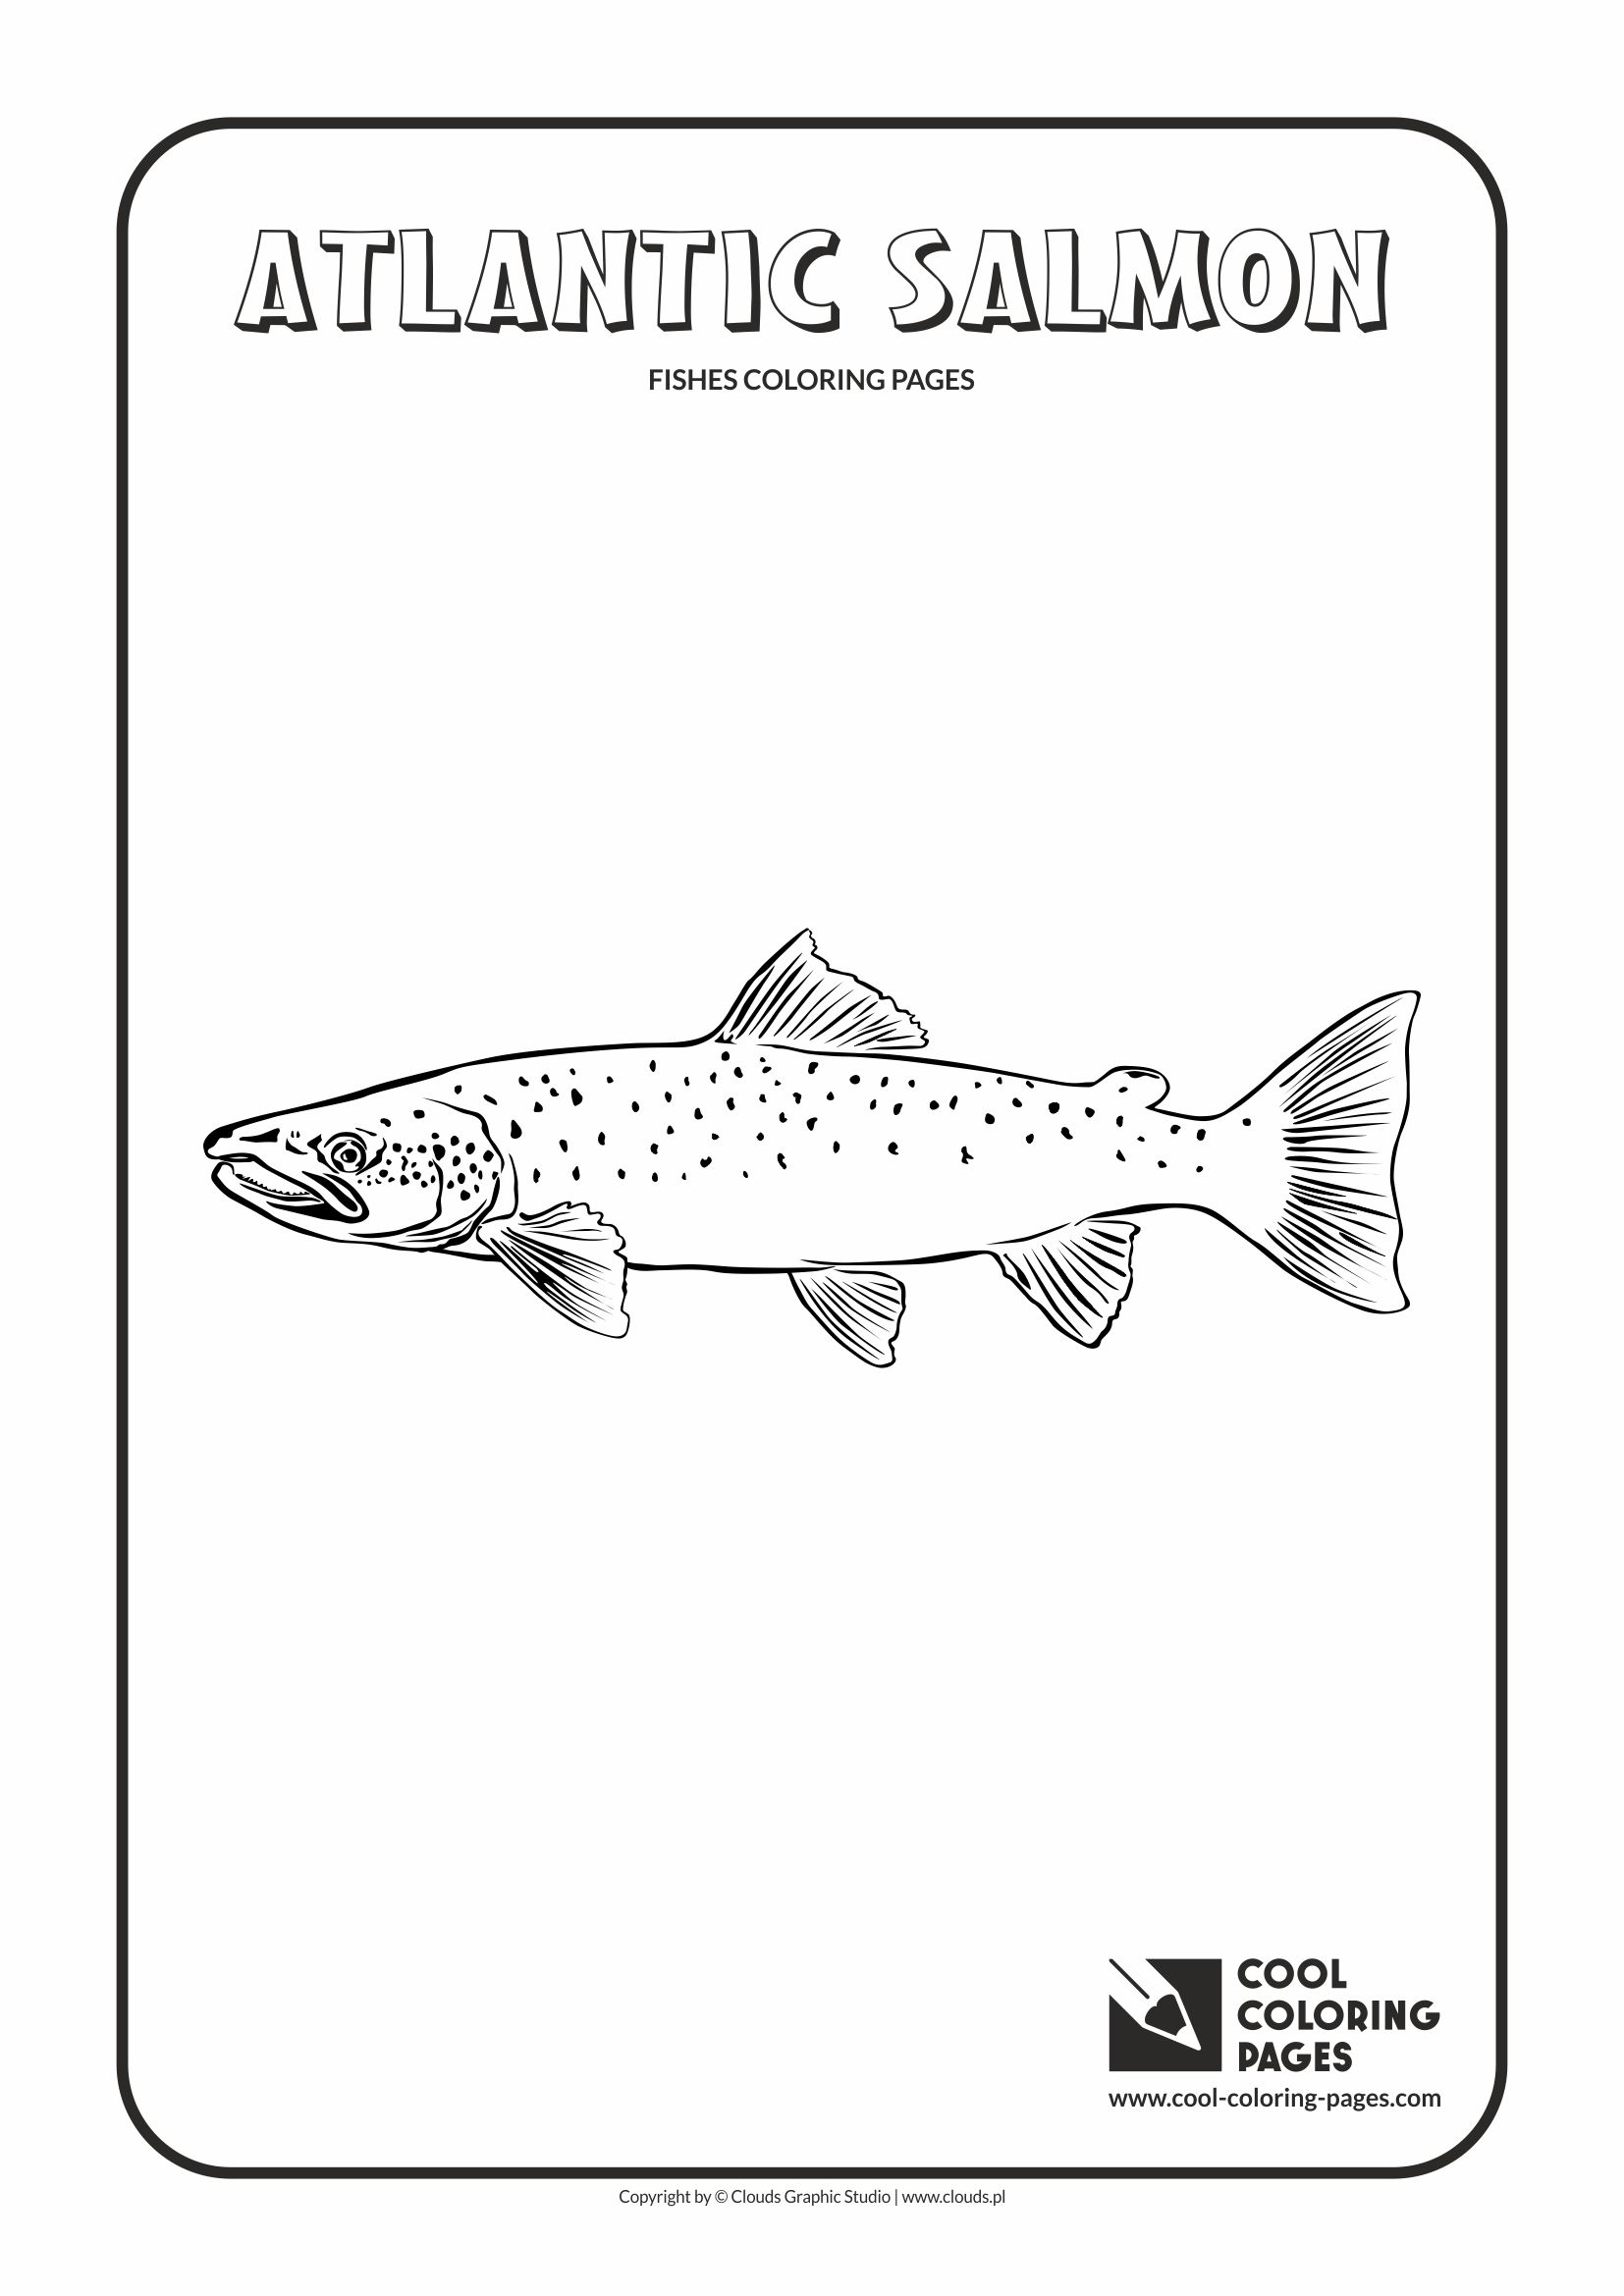 Cool Coloring Pages - Animals / Atlantic salmon / Coloring page with atlantic salmon